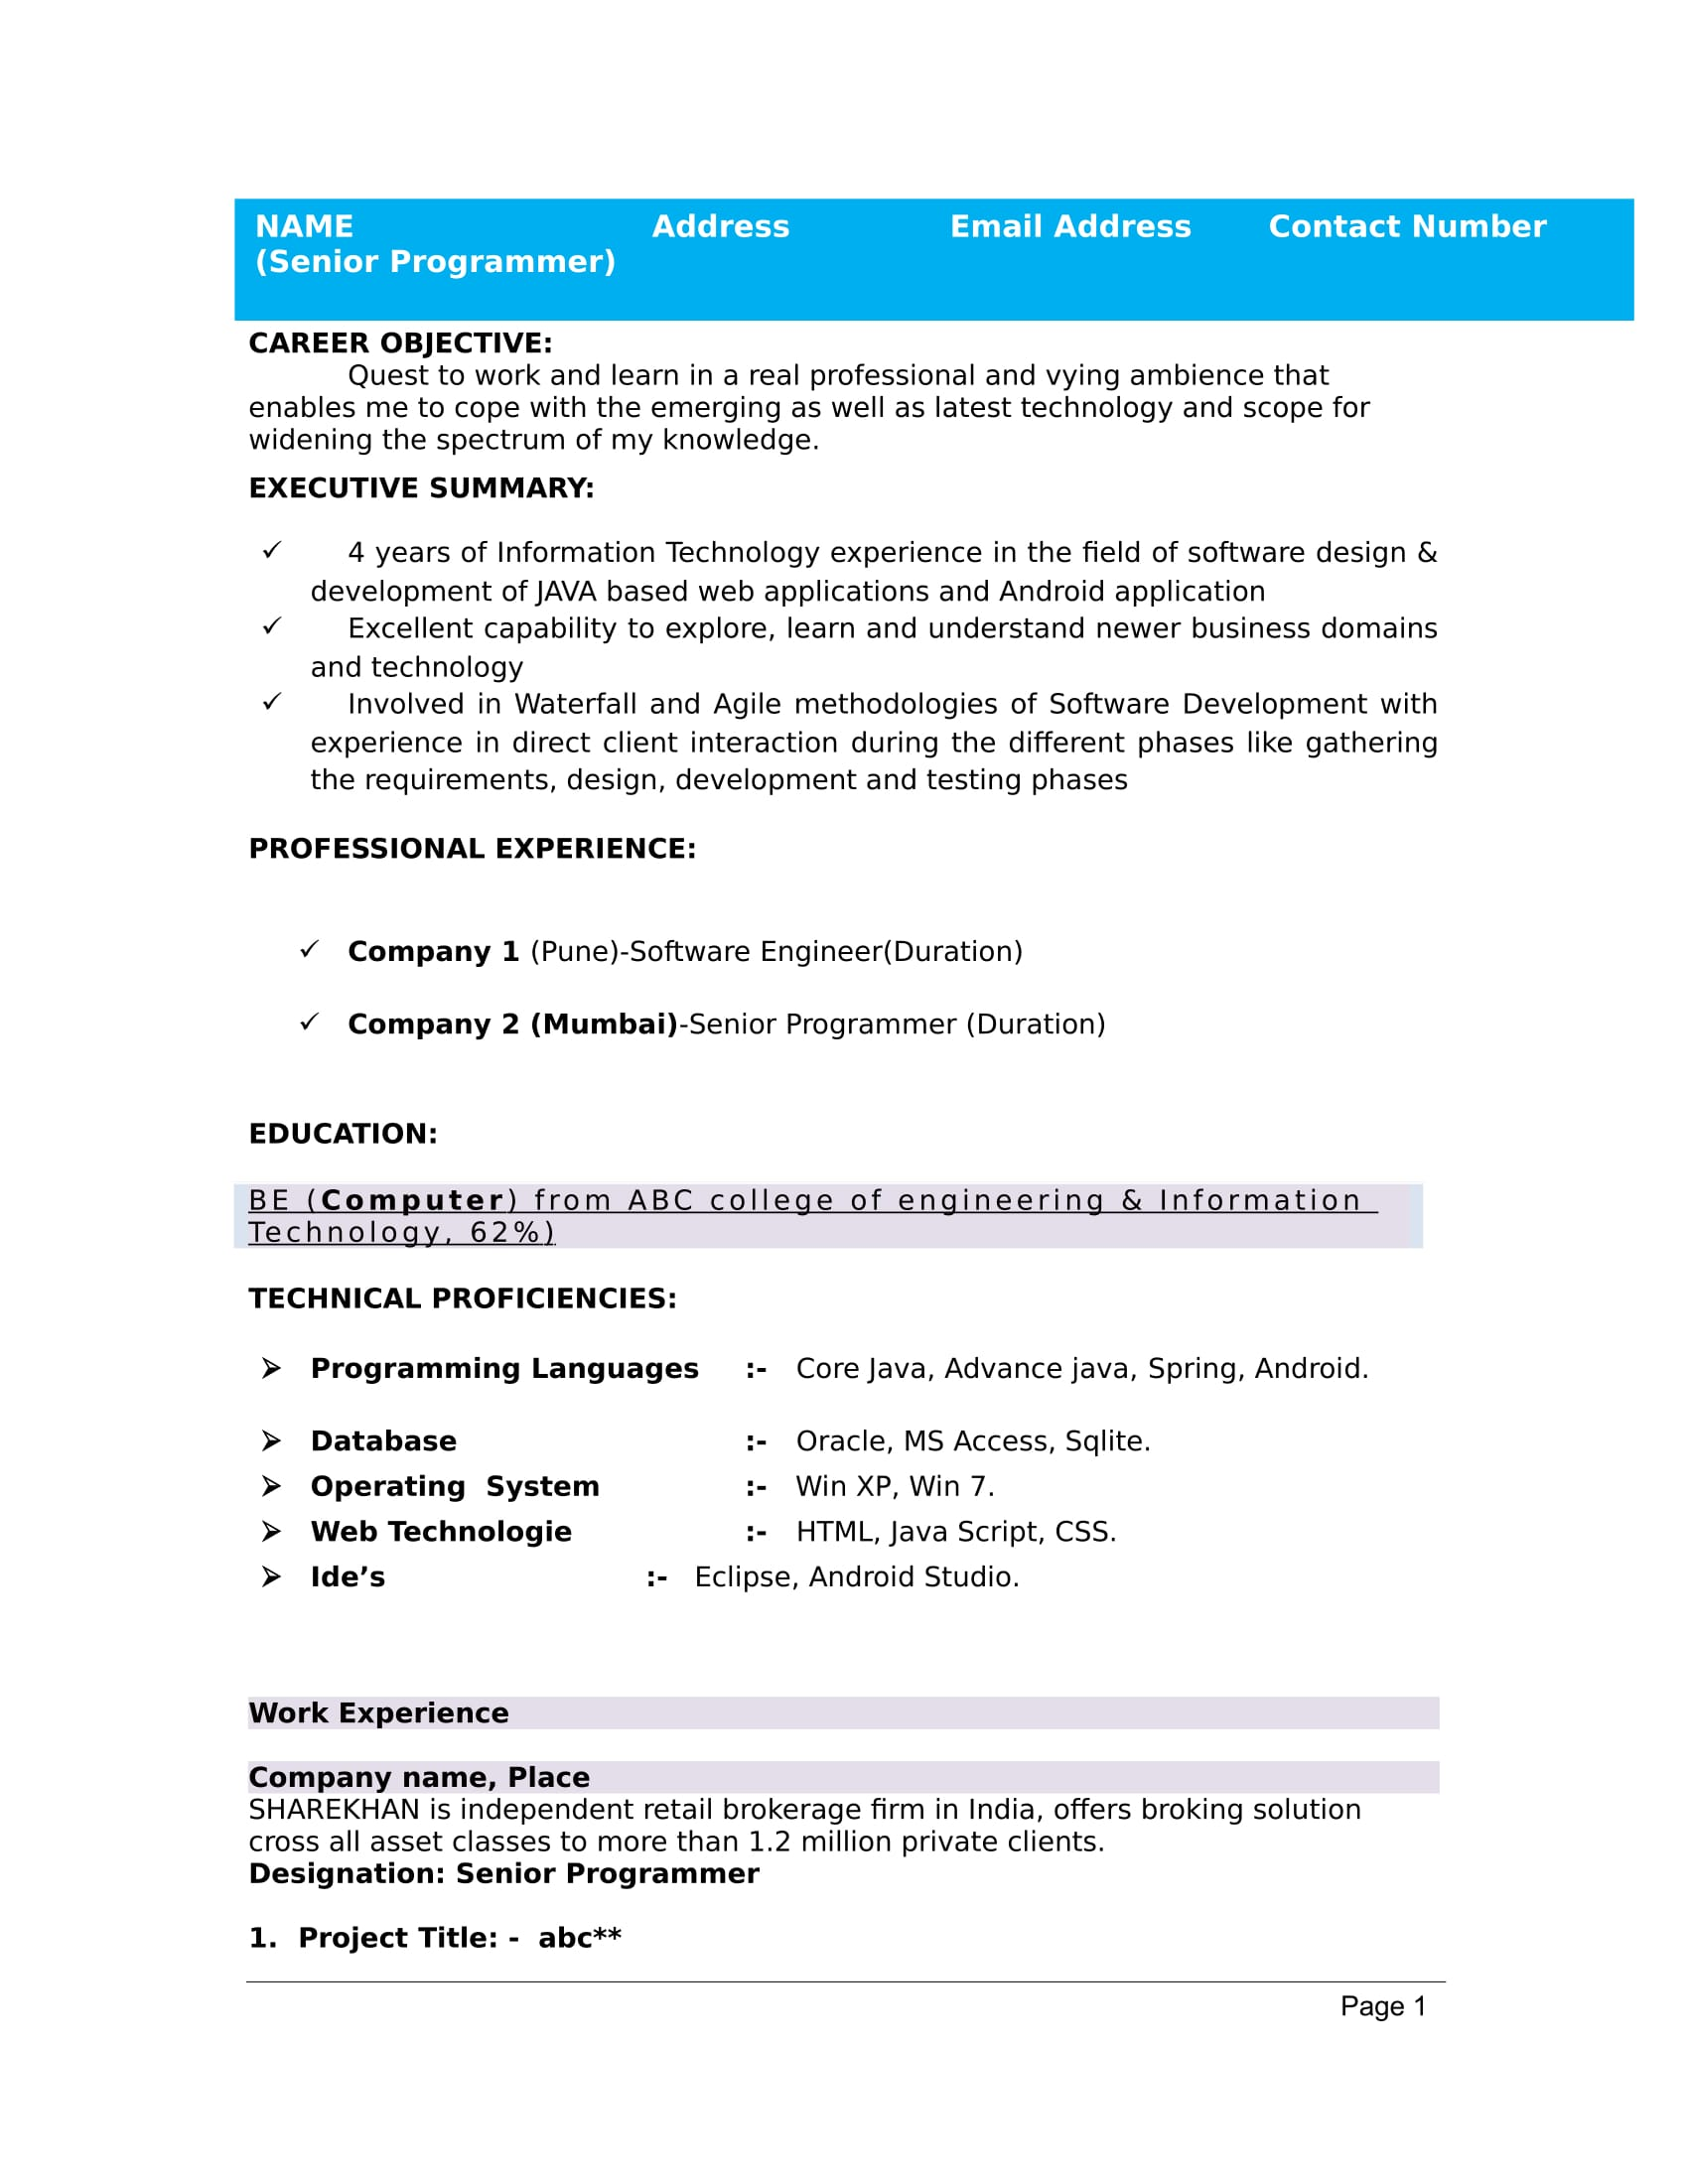 Sample Resume Format For Freshers 32 43 Resume Templates For Freshers Download Free Word Format